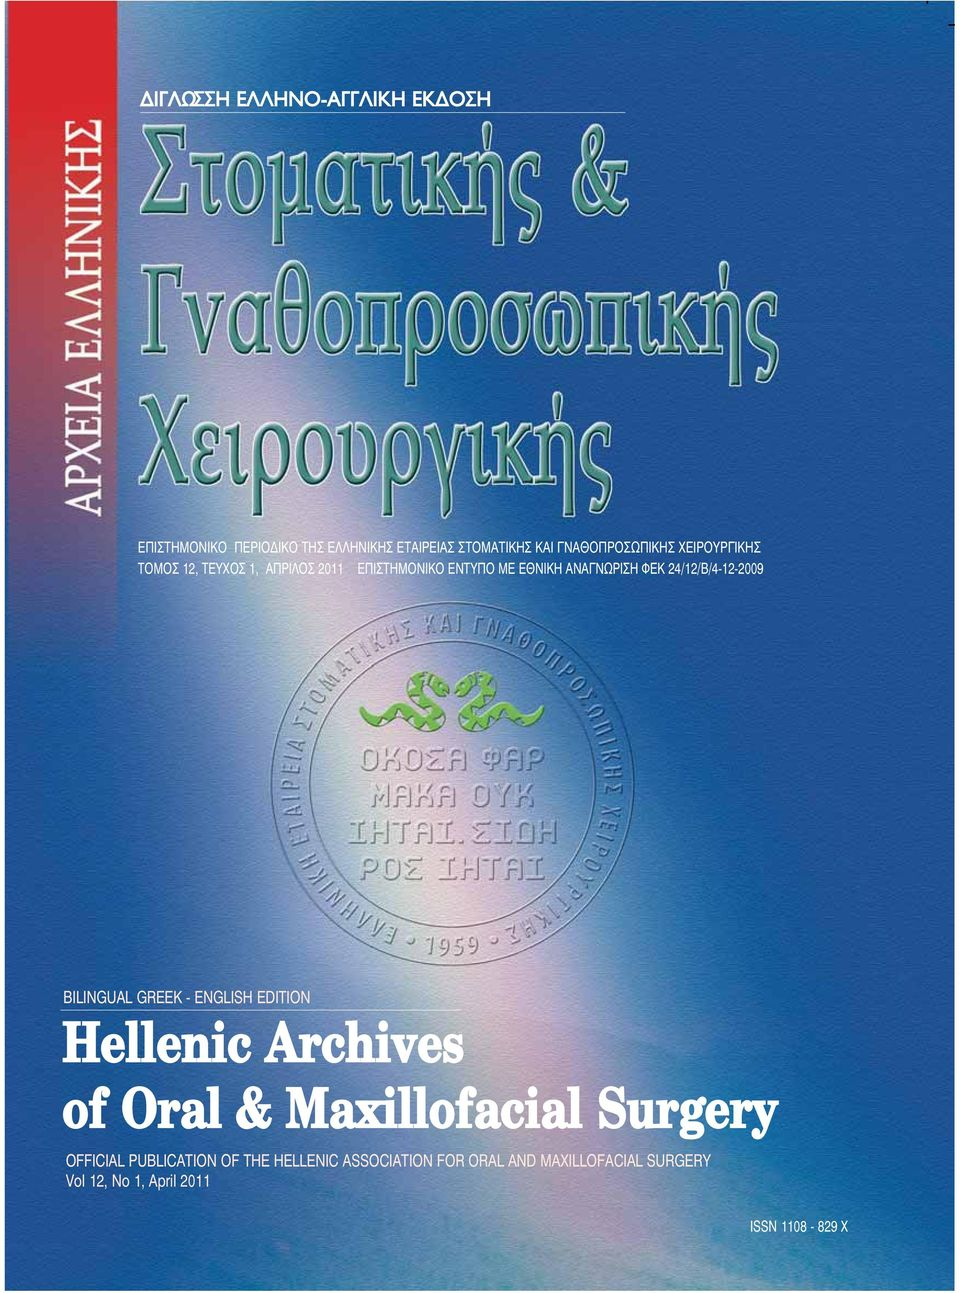 24/12/Β/4-12-2009 ΒILINGUAL GREEK - ENGLISH EDITION Hellenic Archives of Oral & Maxillofacial Surgery